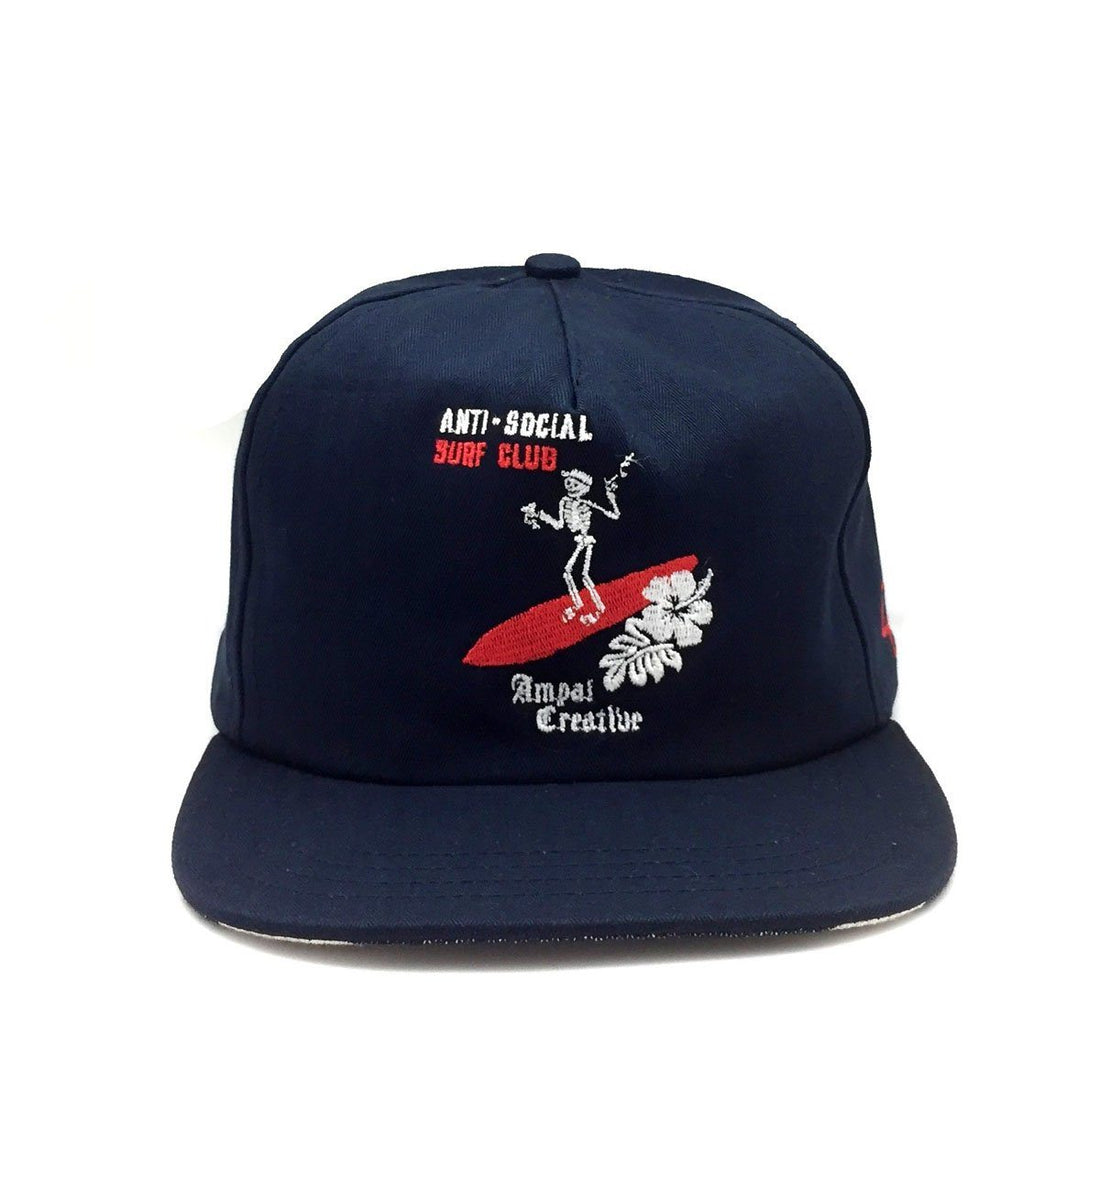 The Ampal Creative ASSC Skeleton Strapback - Navy - Headwear - Iron and Resin